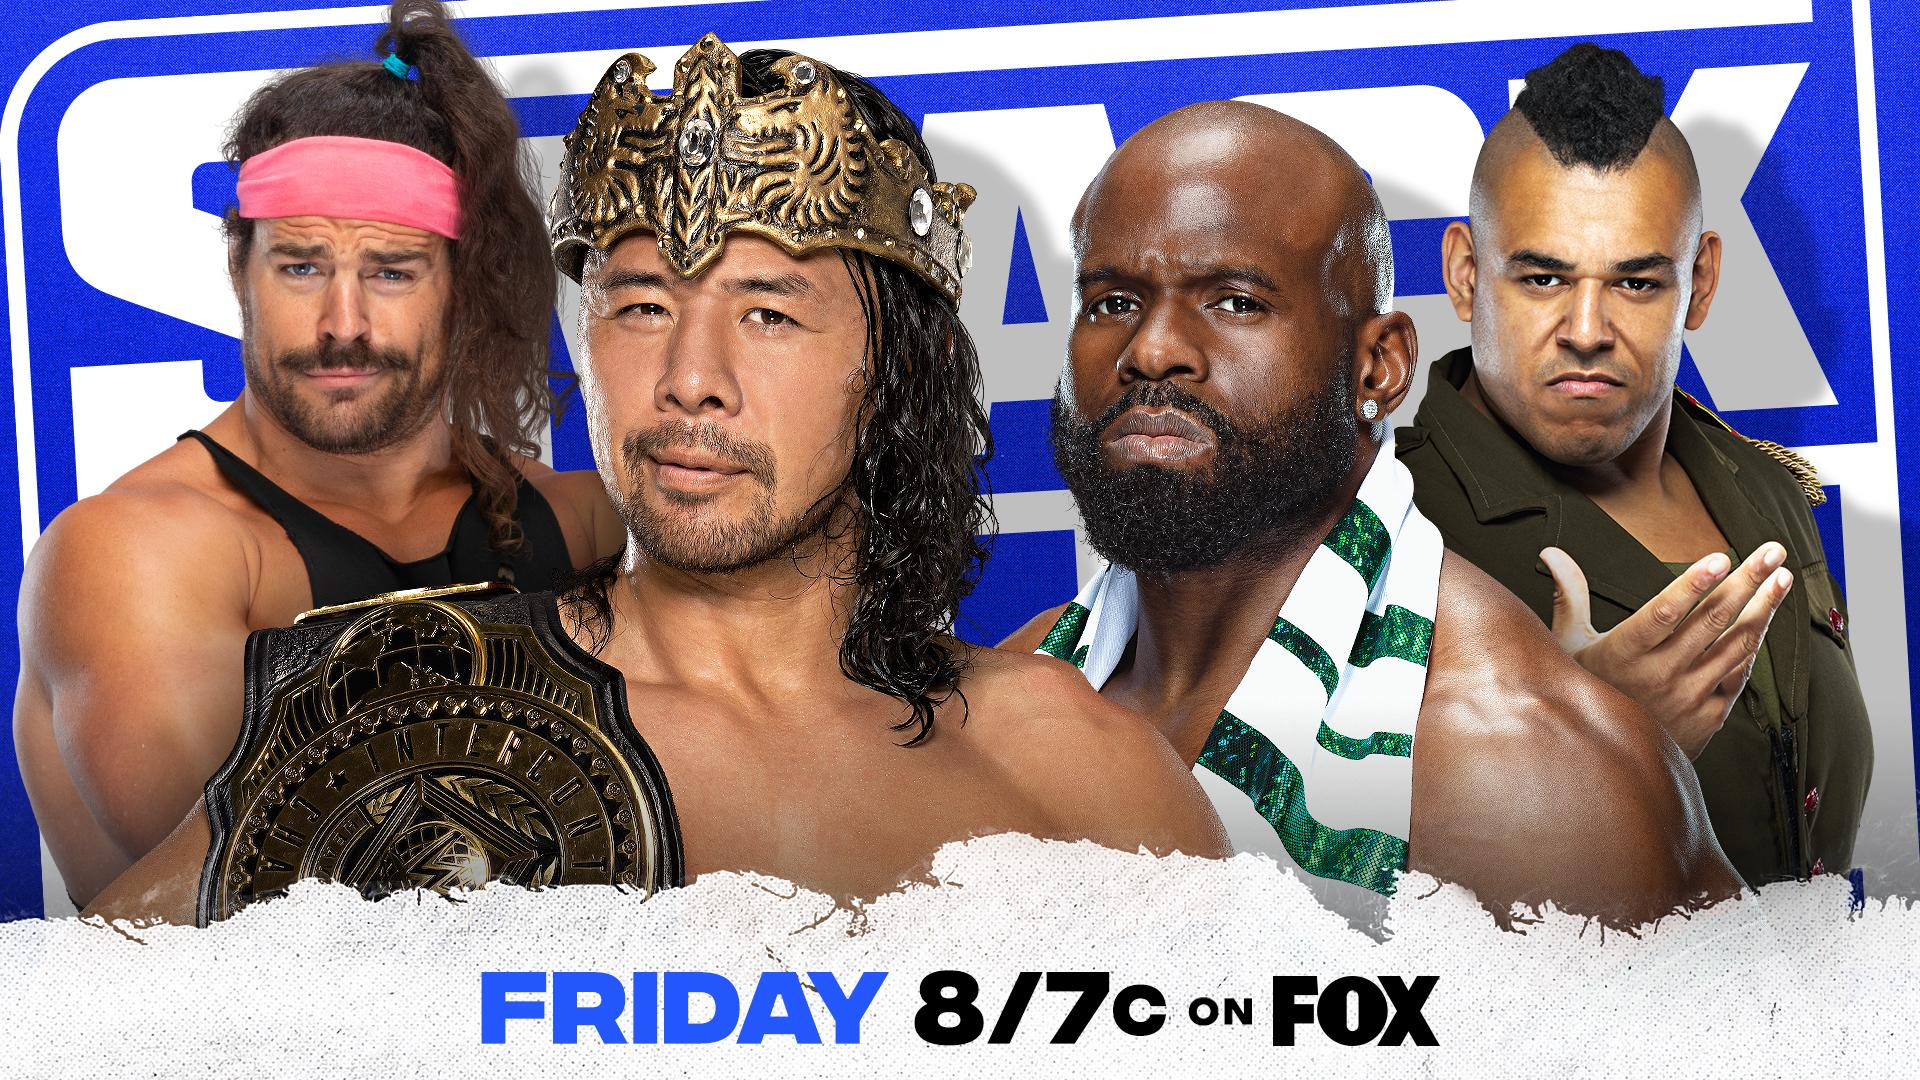 WWE SmackDown Preview For Tonight: Extreme Rules Go-Home Show